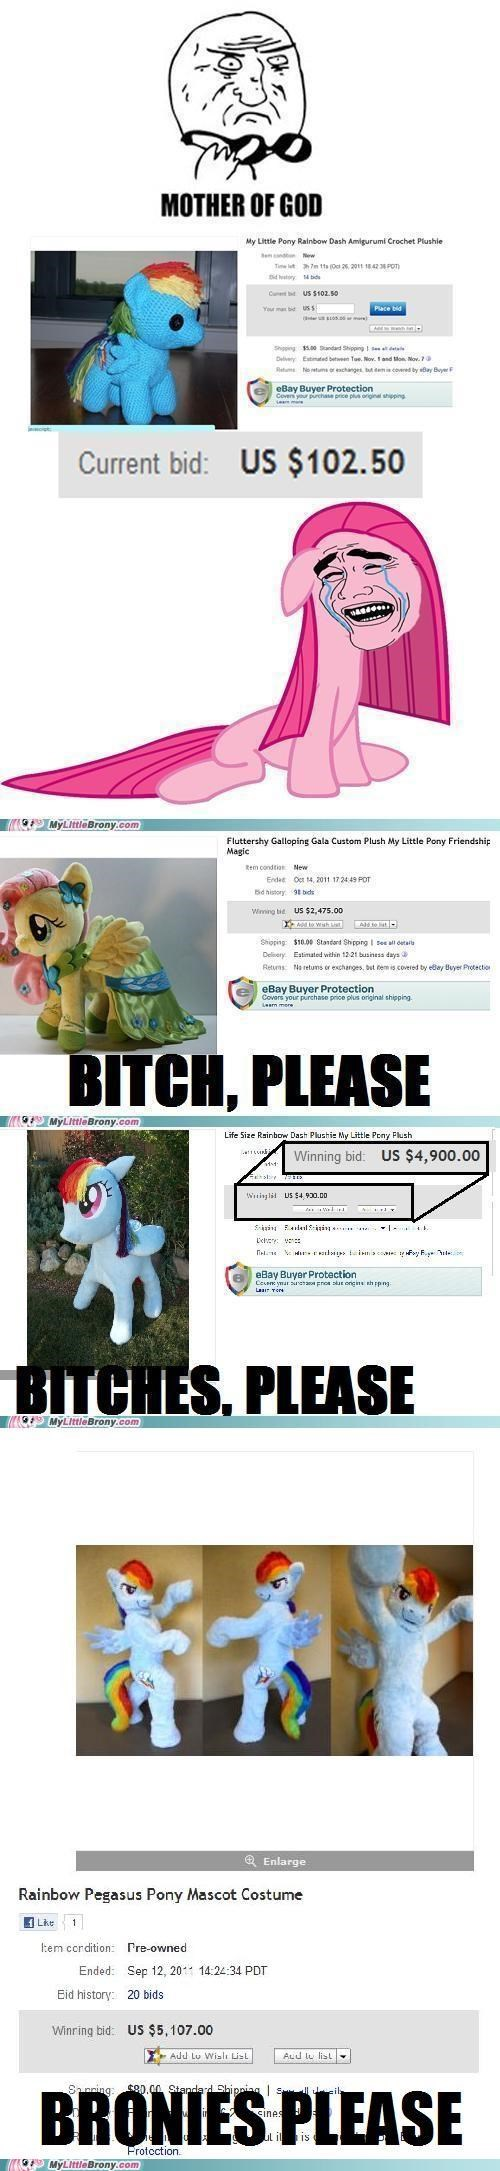 The Rainbow Dash Costume